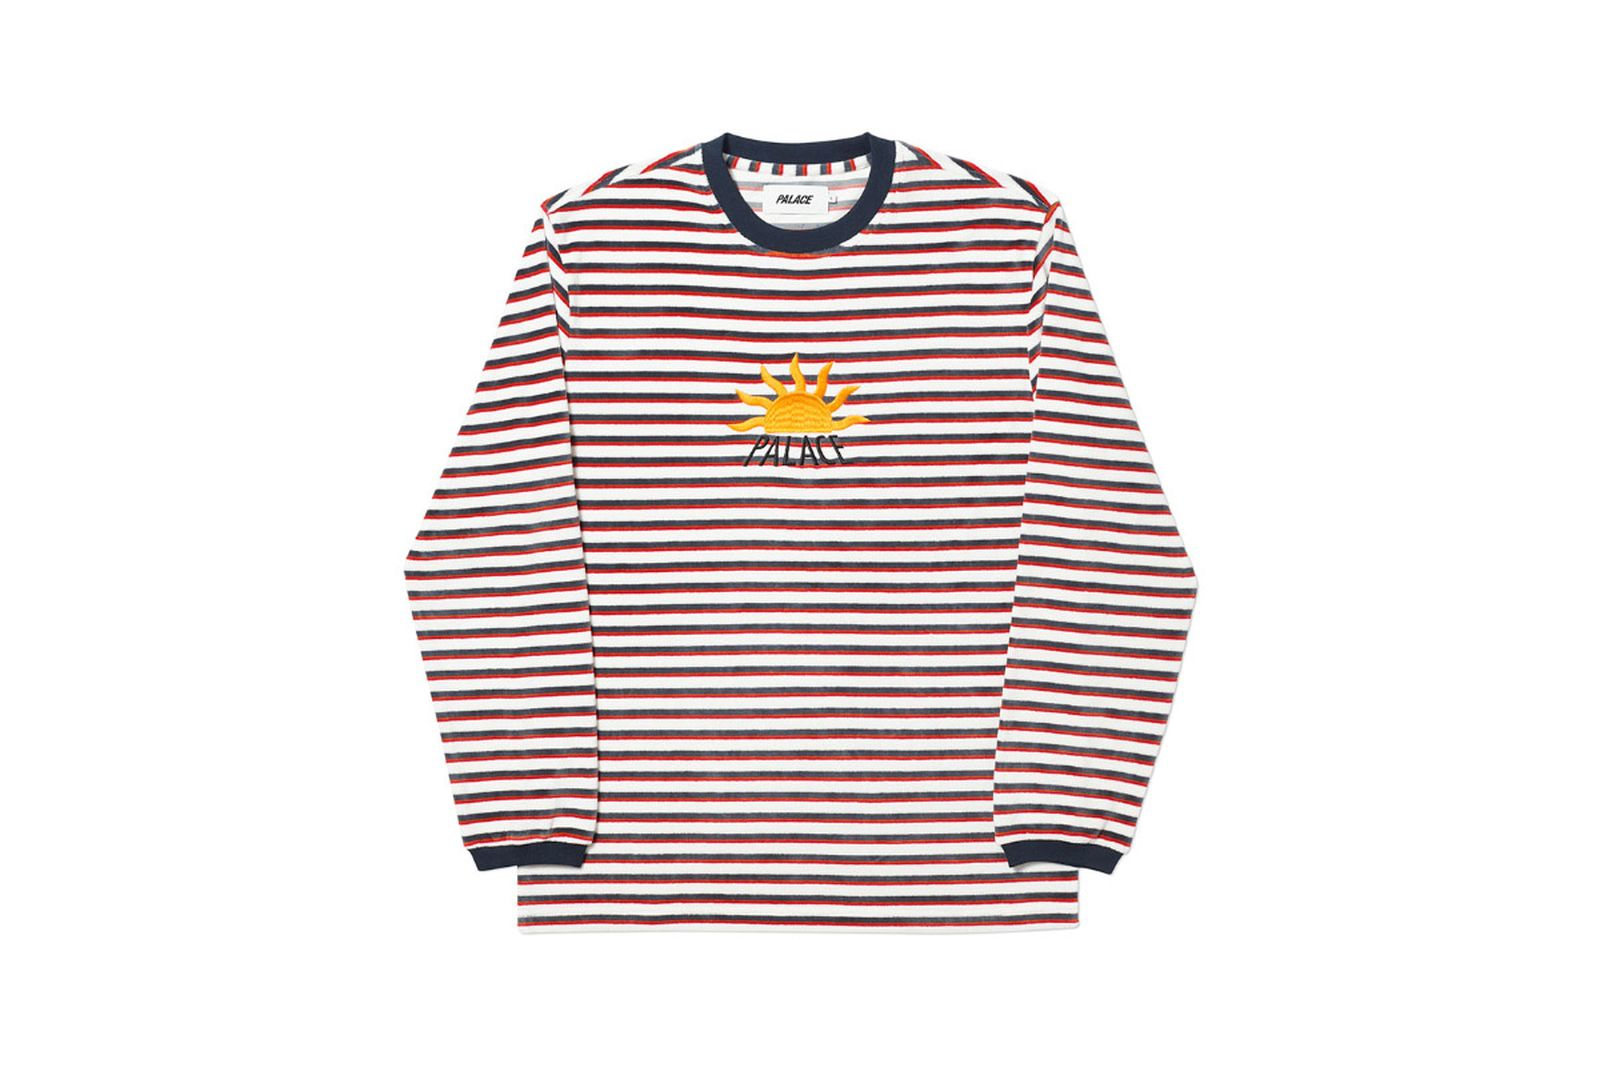 Palace 2019 Autumn Crew Optimo white red blue front fw19